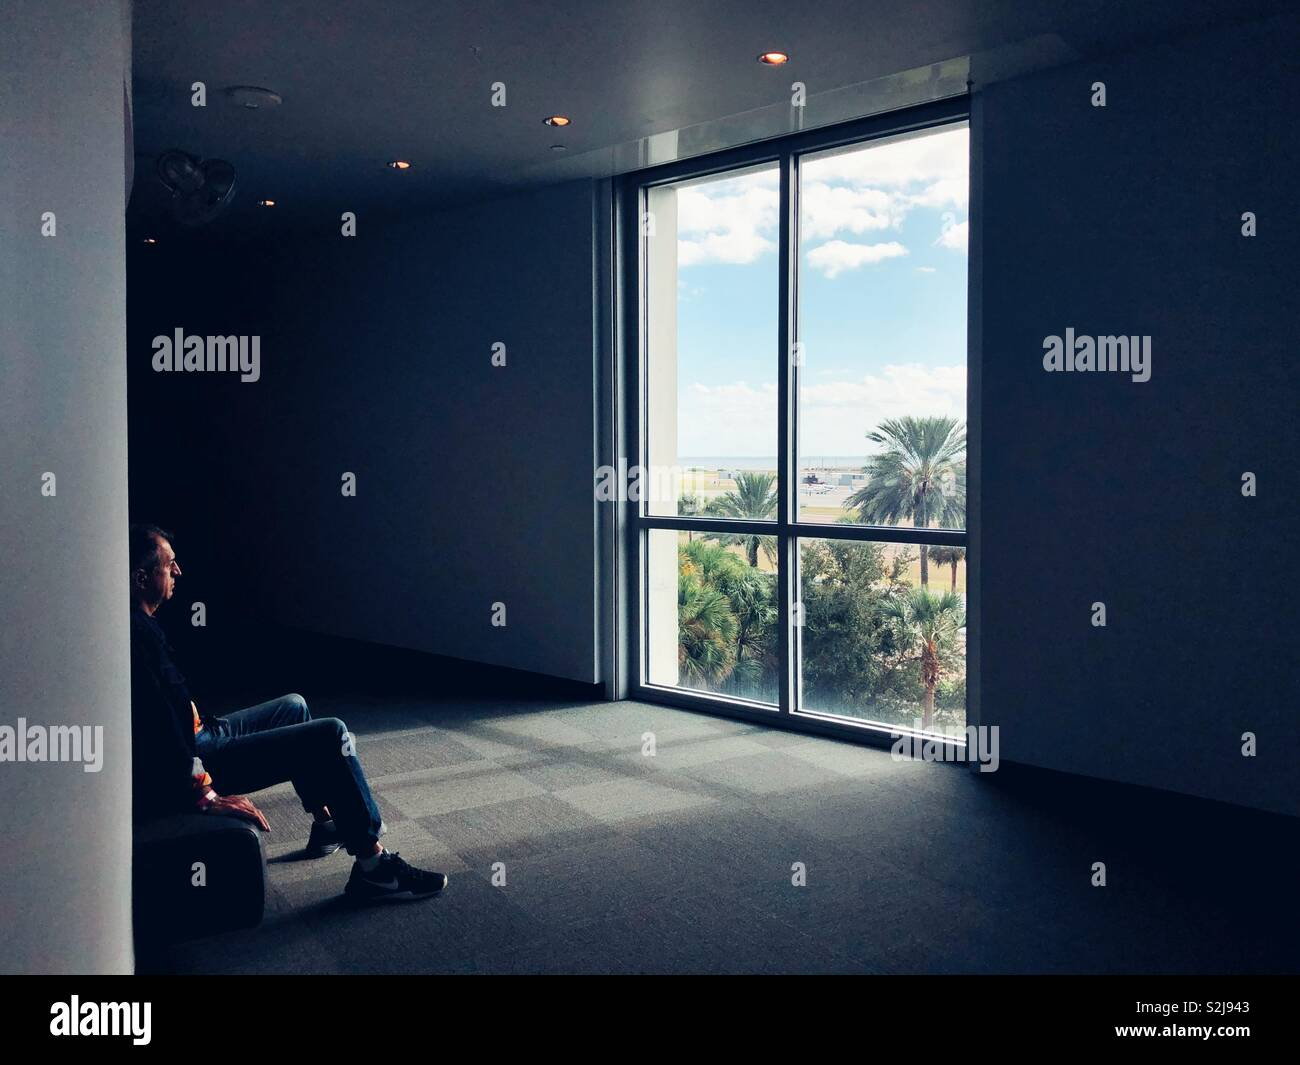 Man lost in thoughts sitting in Contemplation room in Salvador  Dali museum in Saint Petersburg, Florida - Stock Image